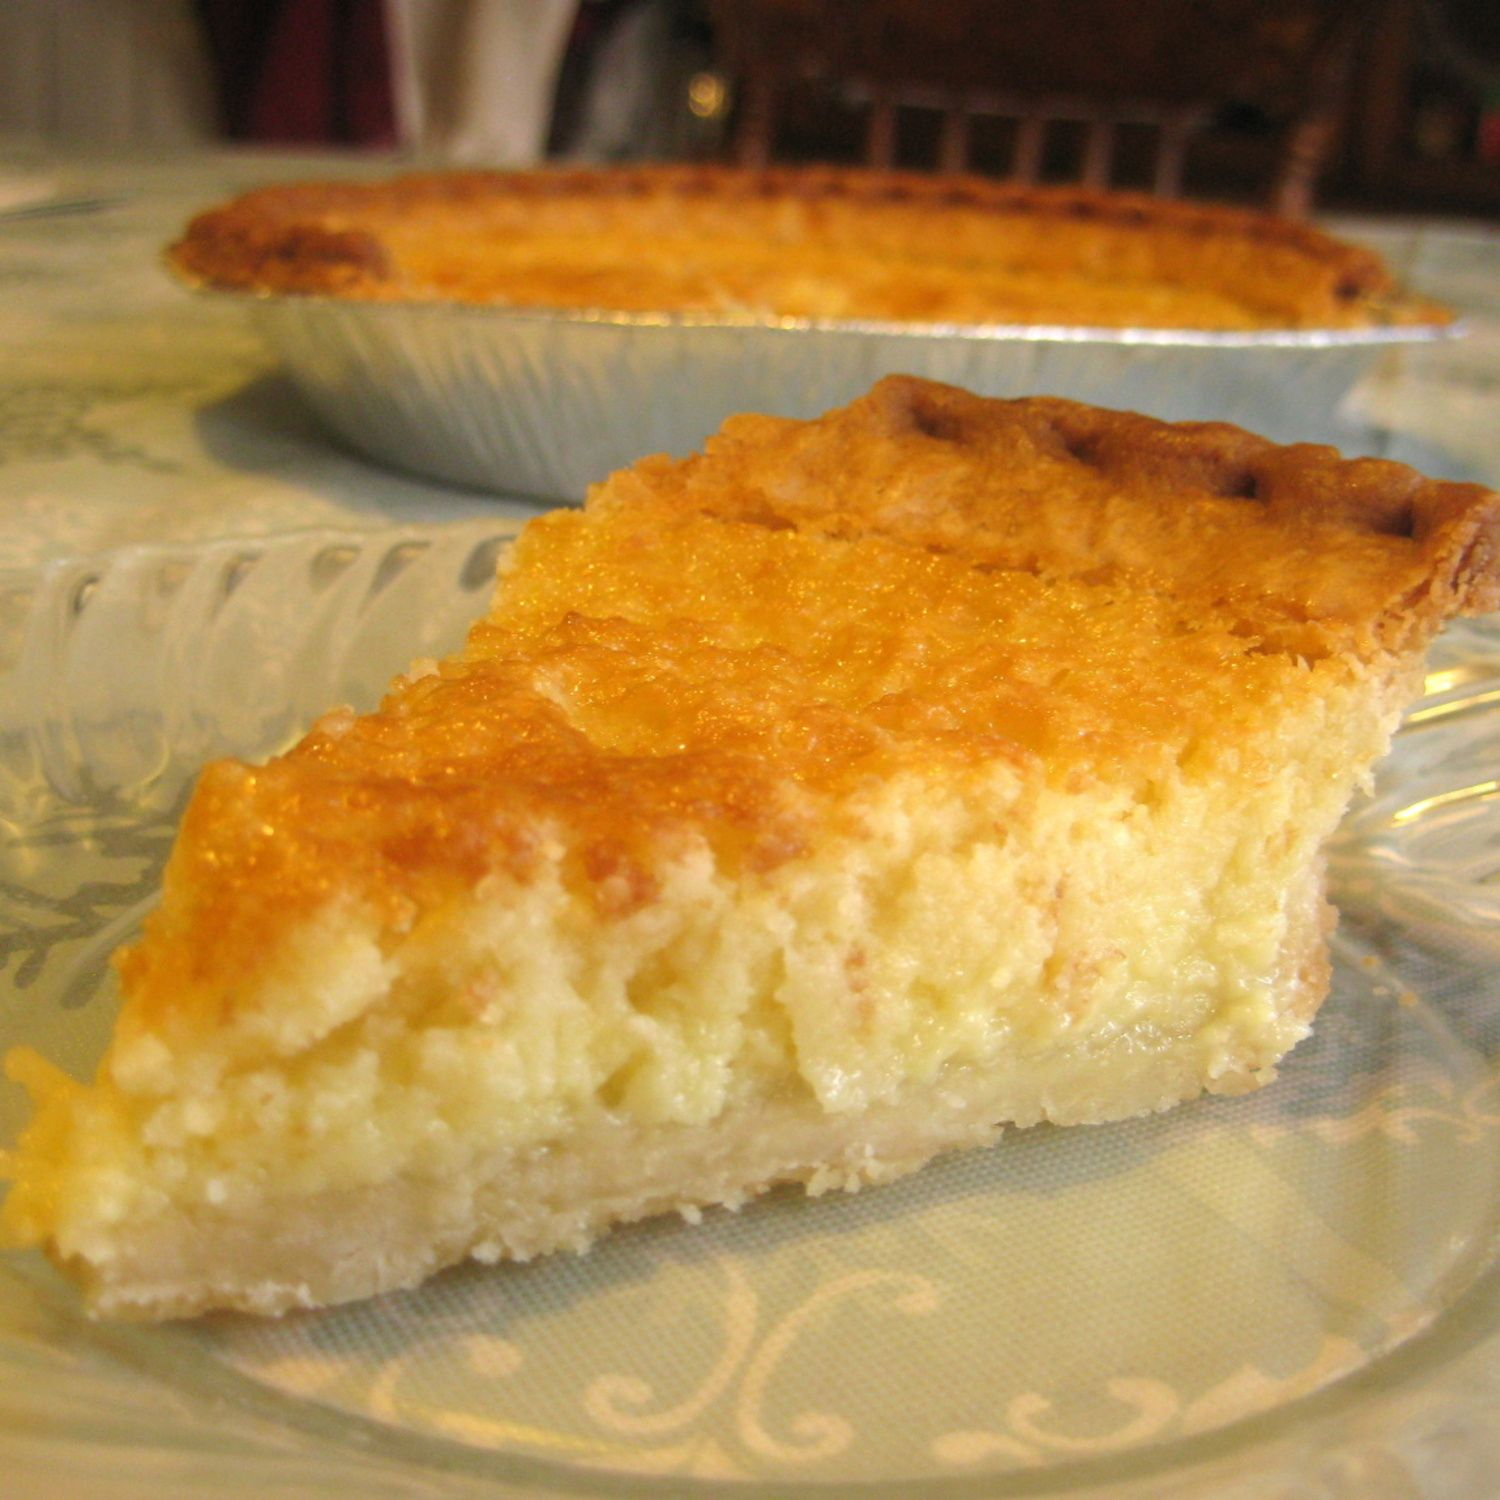 Mama S Buttermilk Pie Buttermilk Pie Recipes Desserts